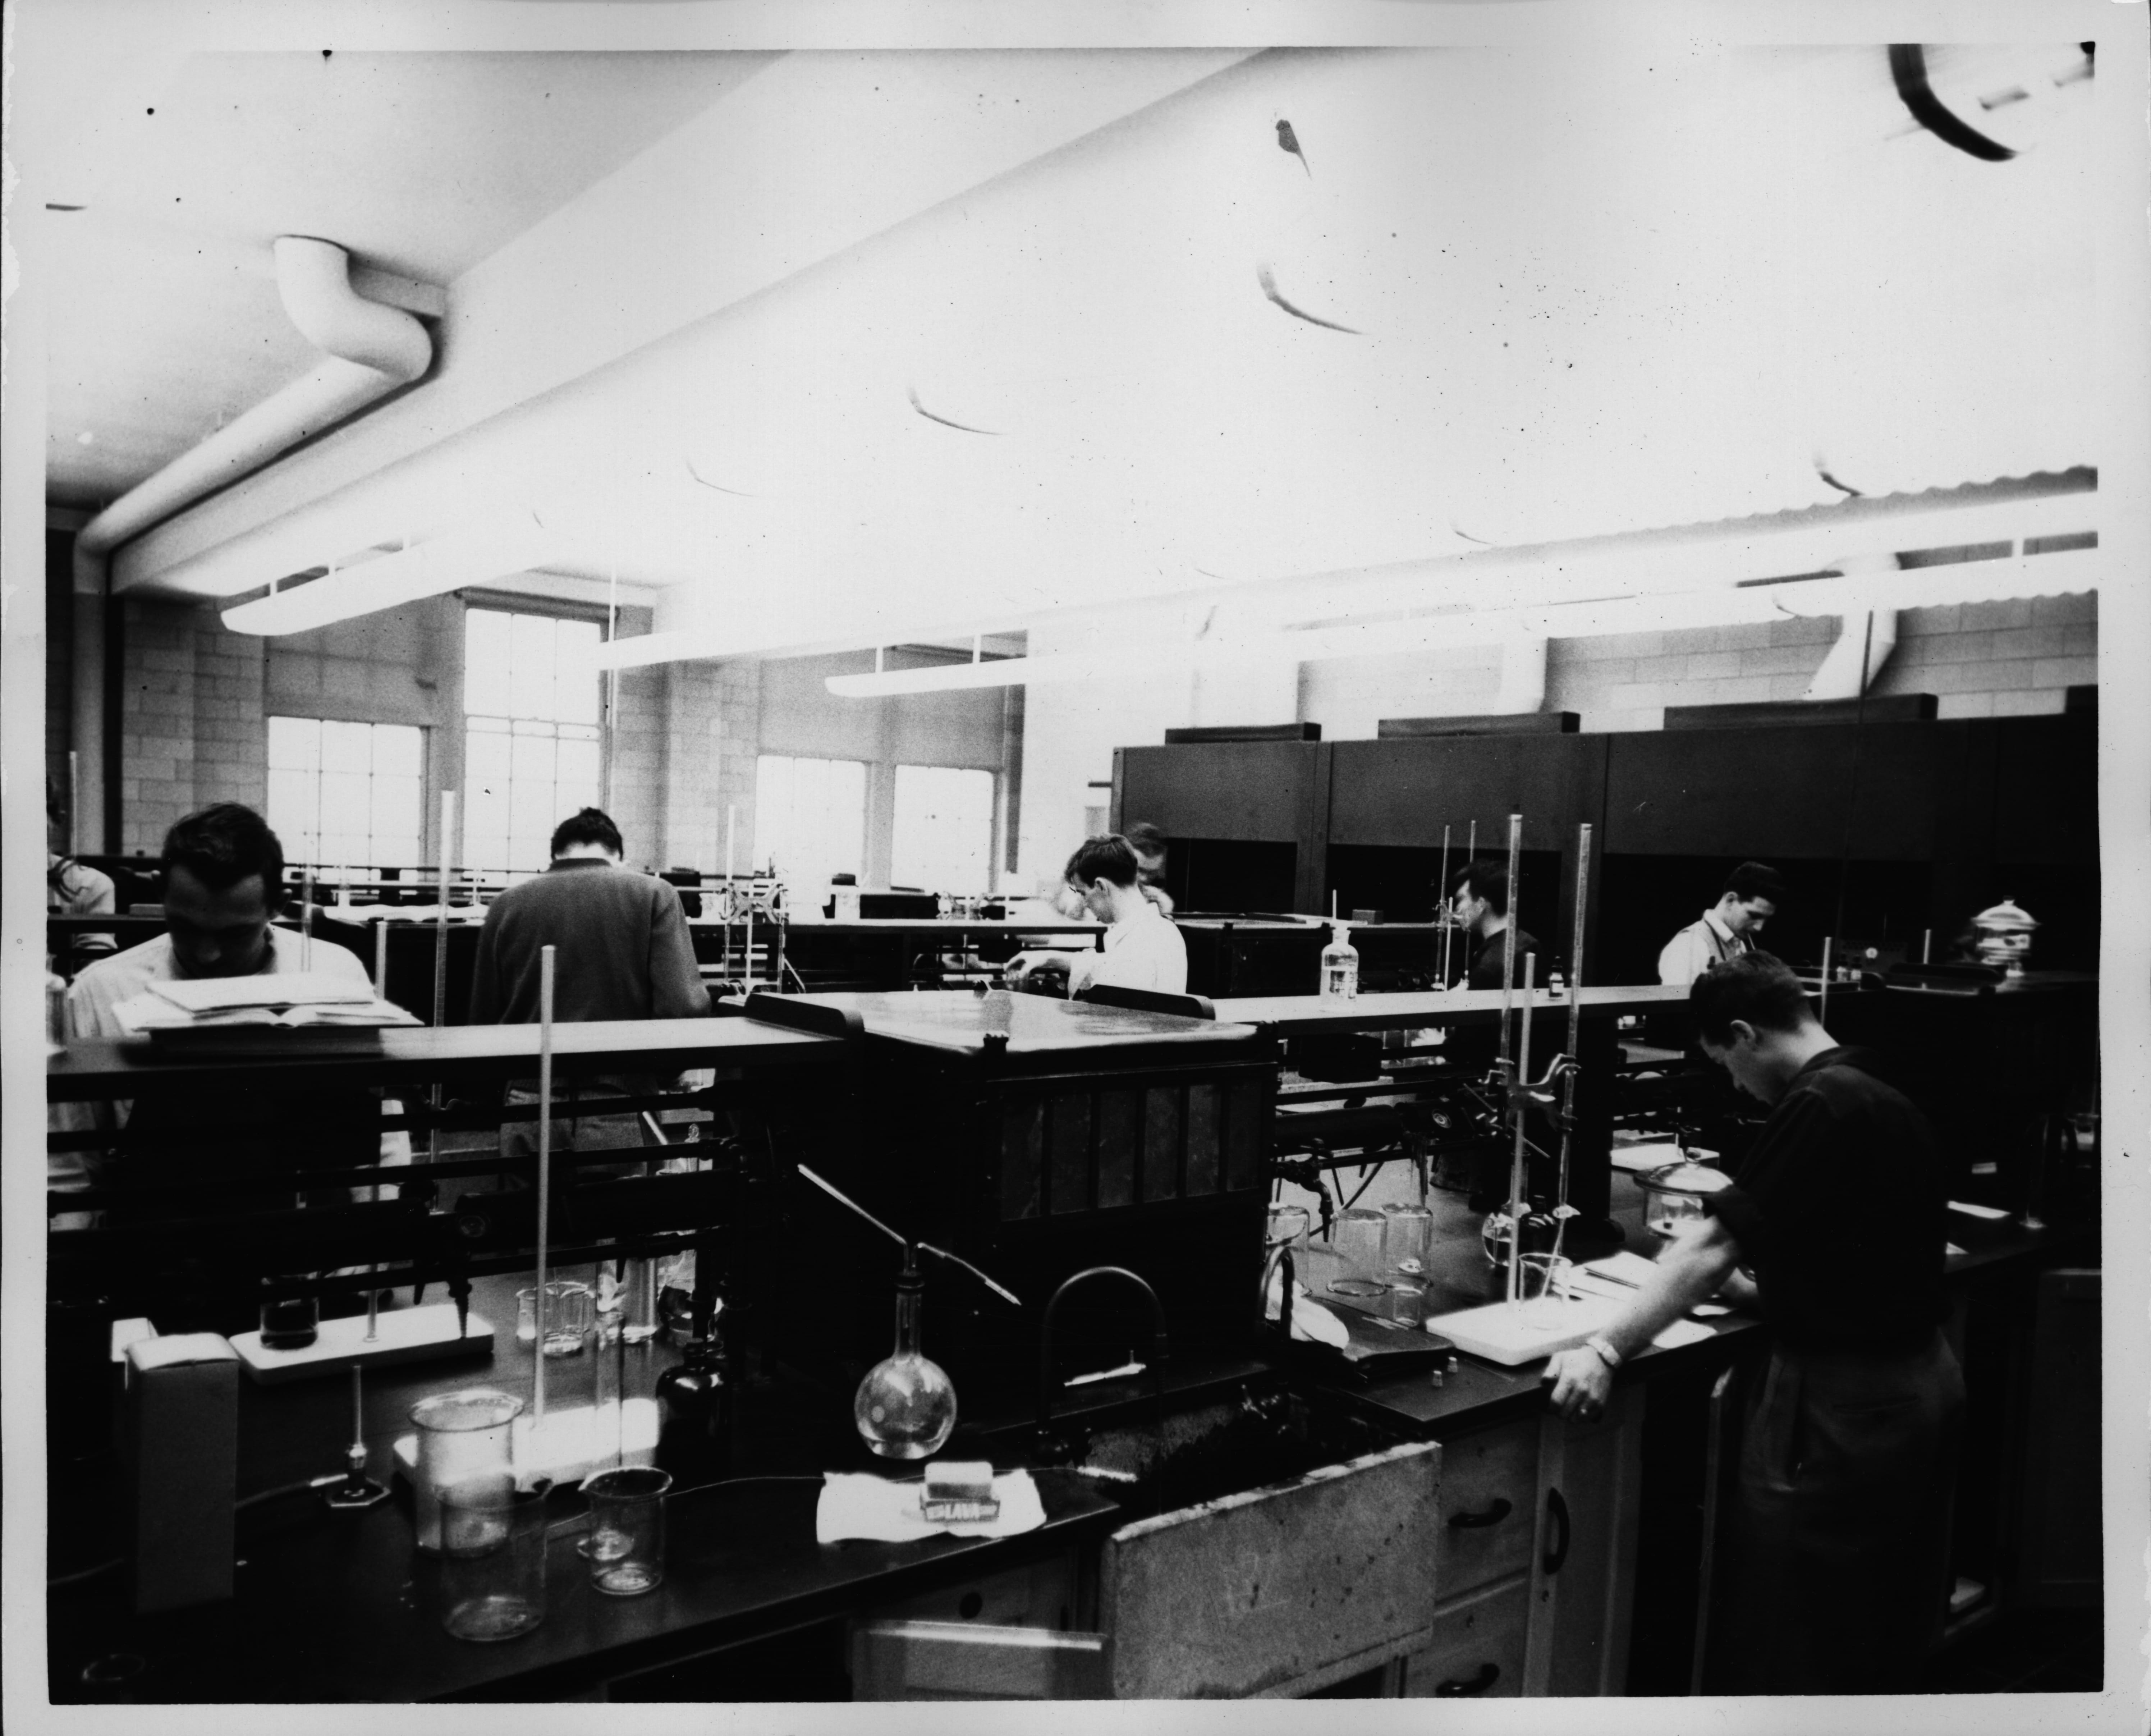 A chemistry lab in 1950. At the time of its opening the Science Building featured state-of-the-art laboratories and other scientific facilities.